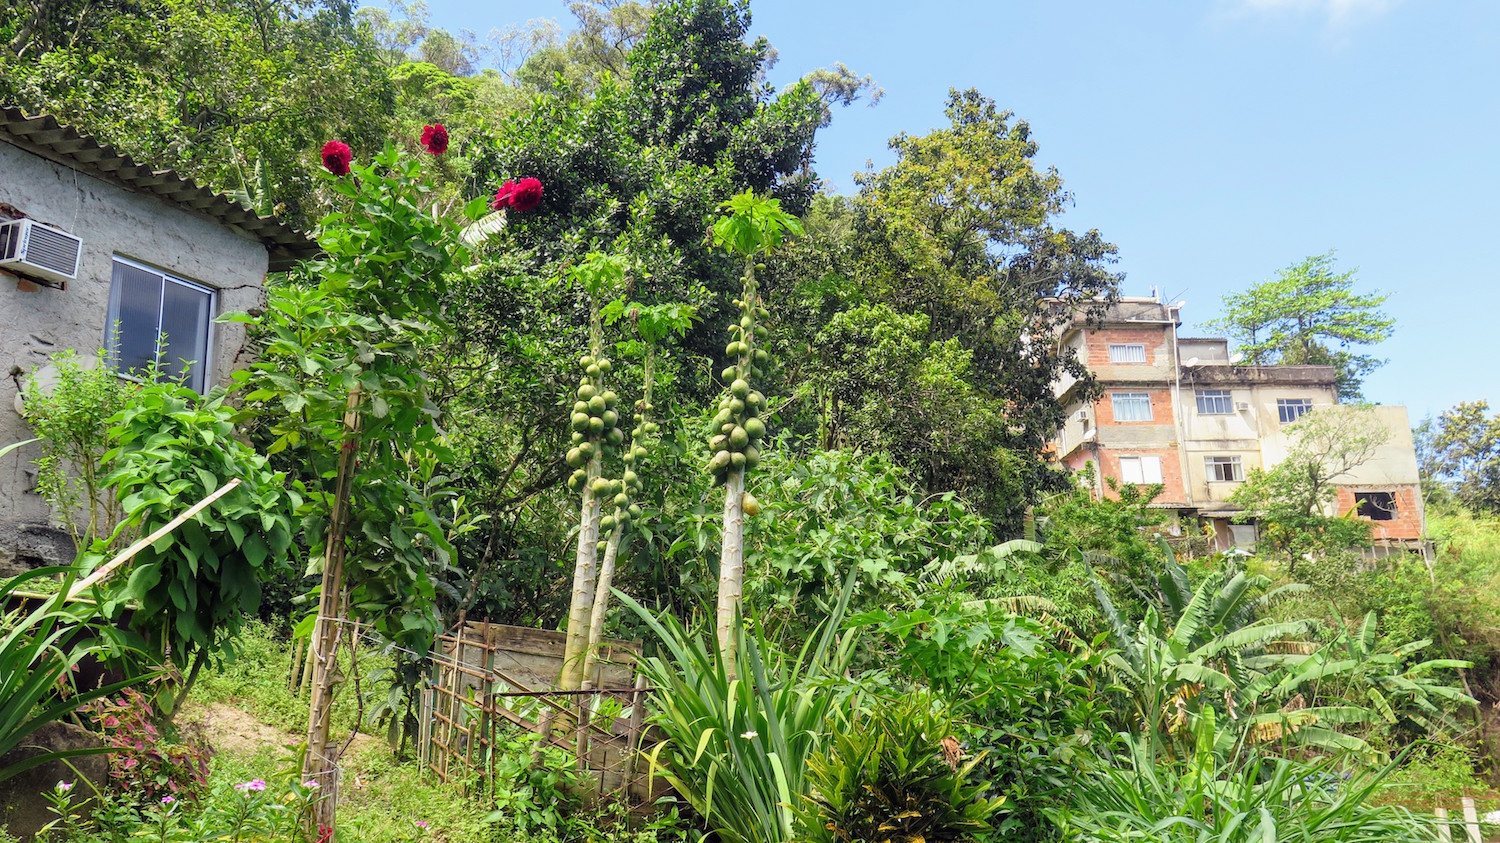 The community and its gardens are inseparable